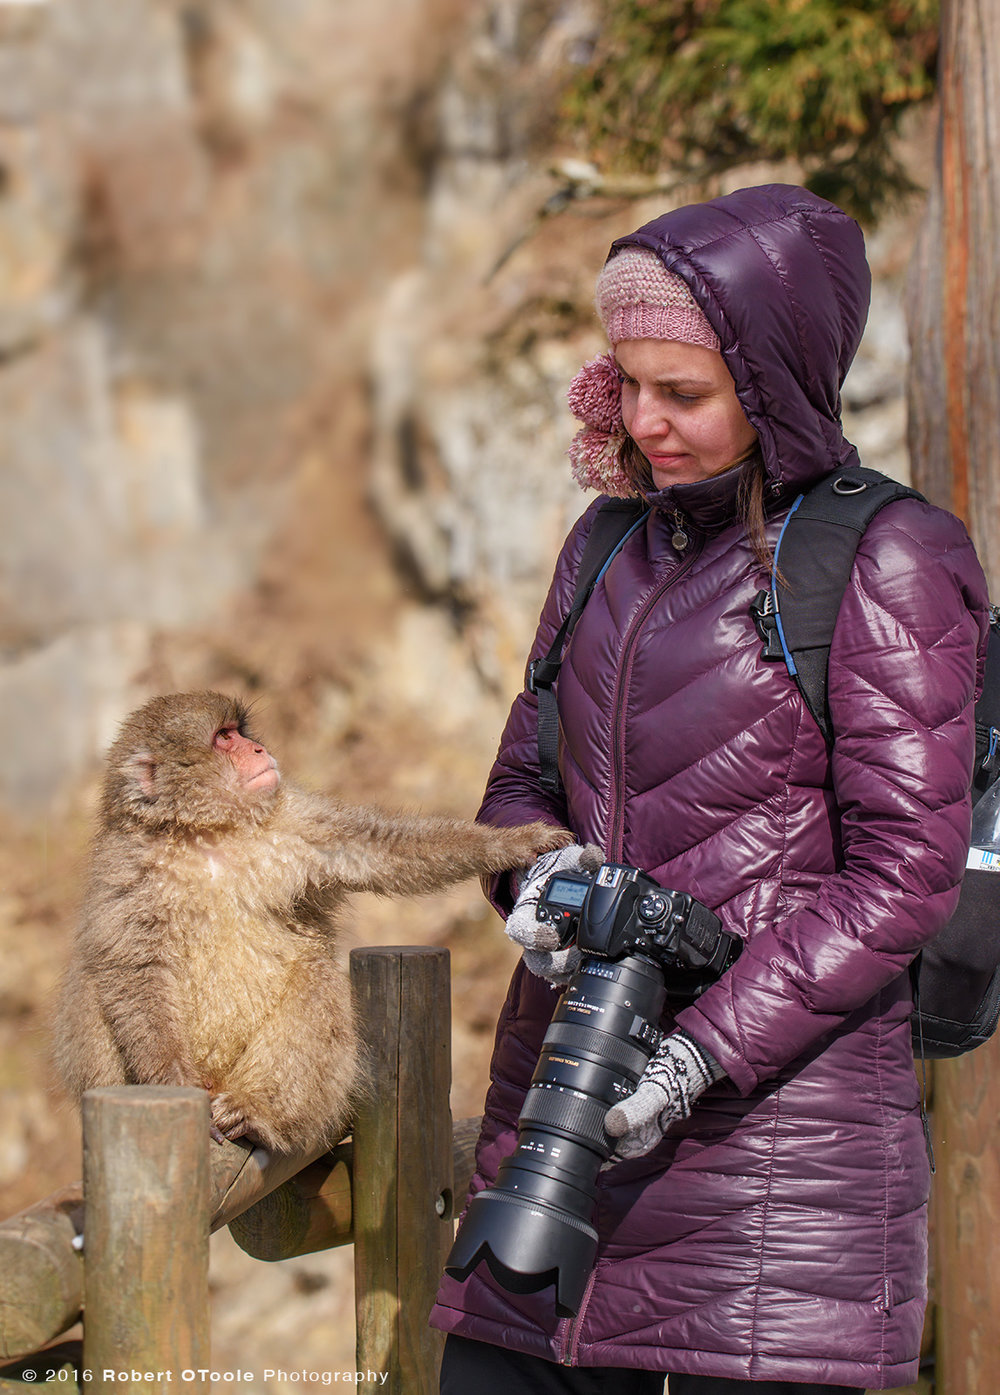 Snow Monkey Baby Making Contact with Photographer